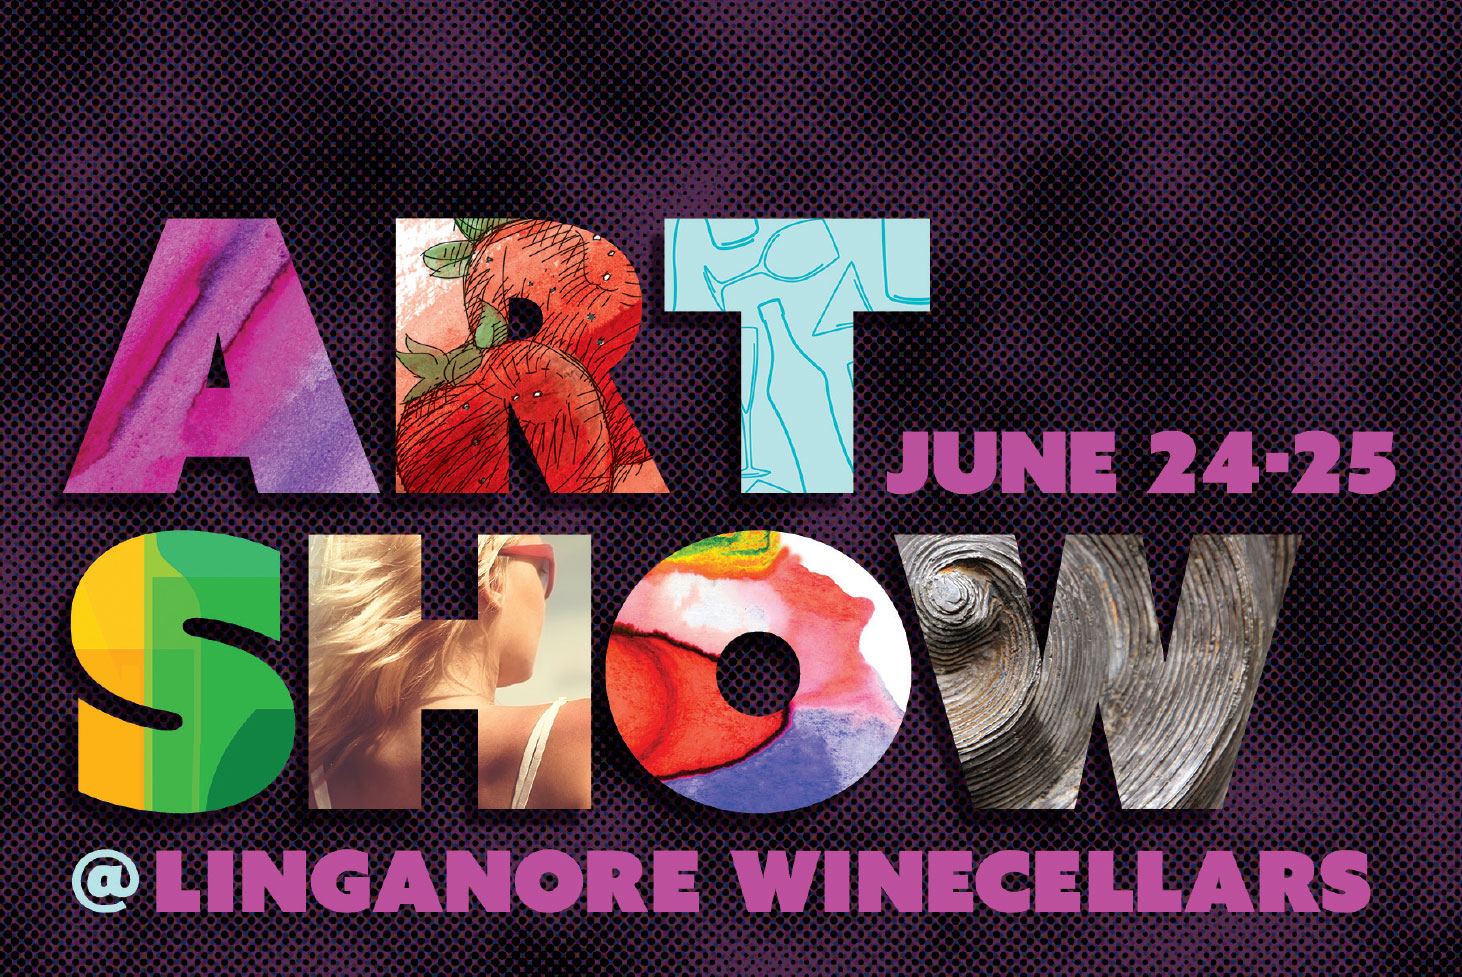 The Art Show at Linganore